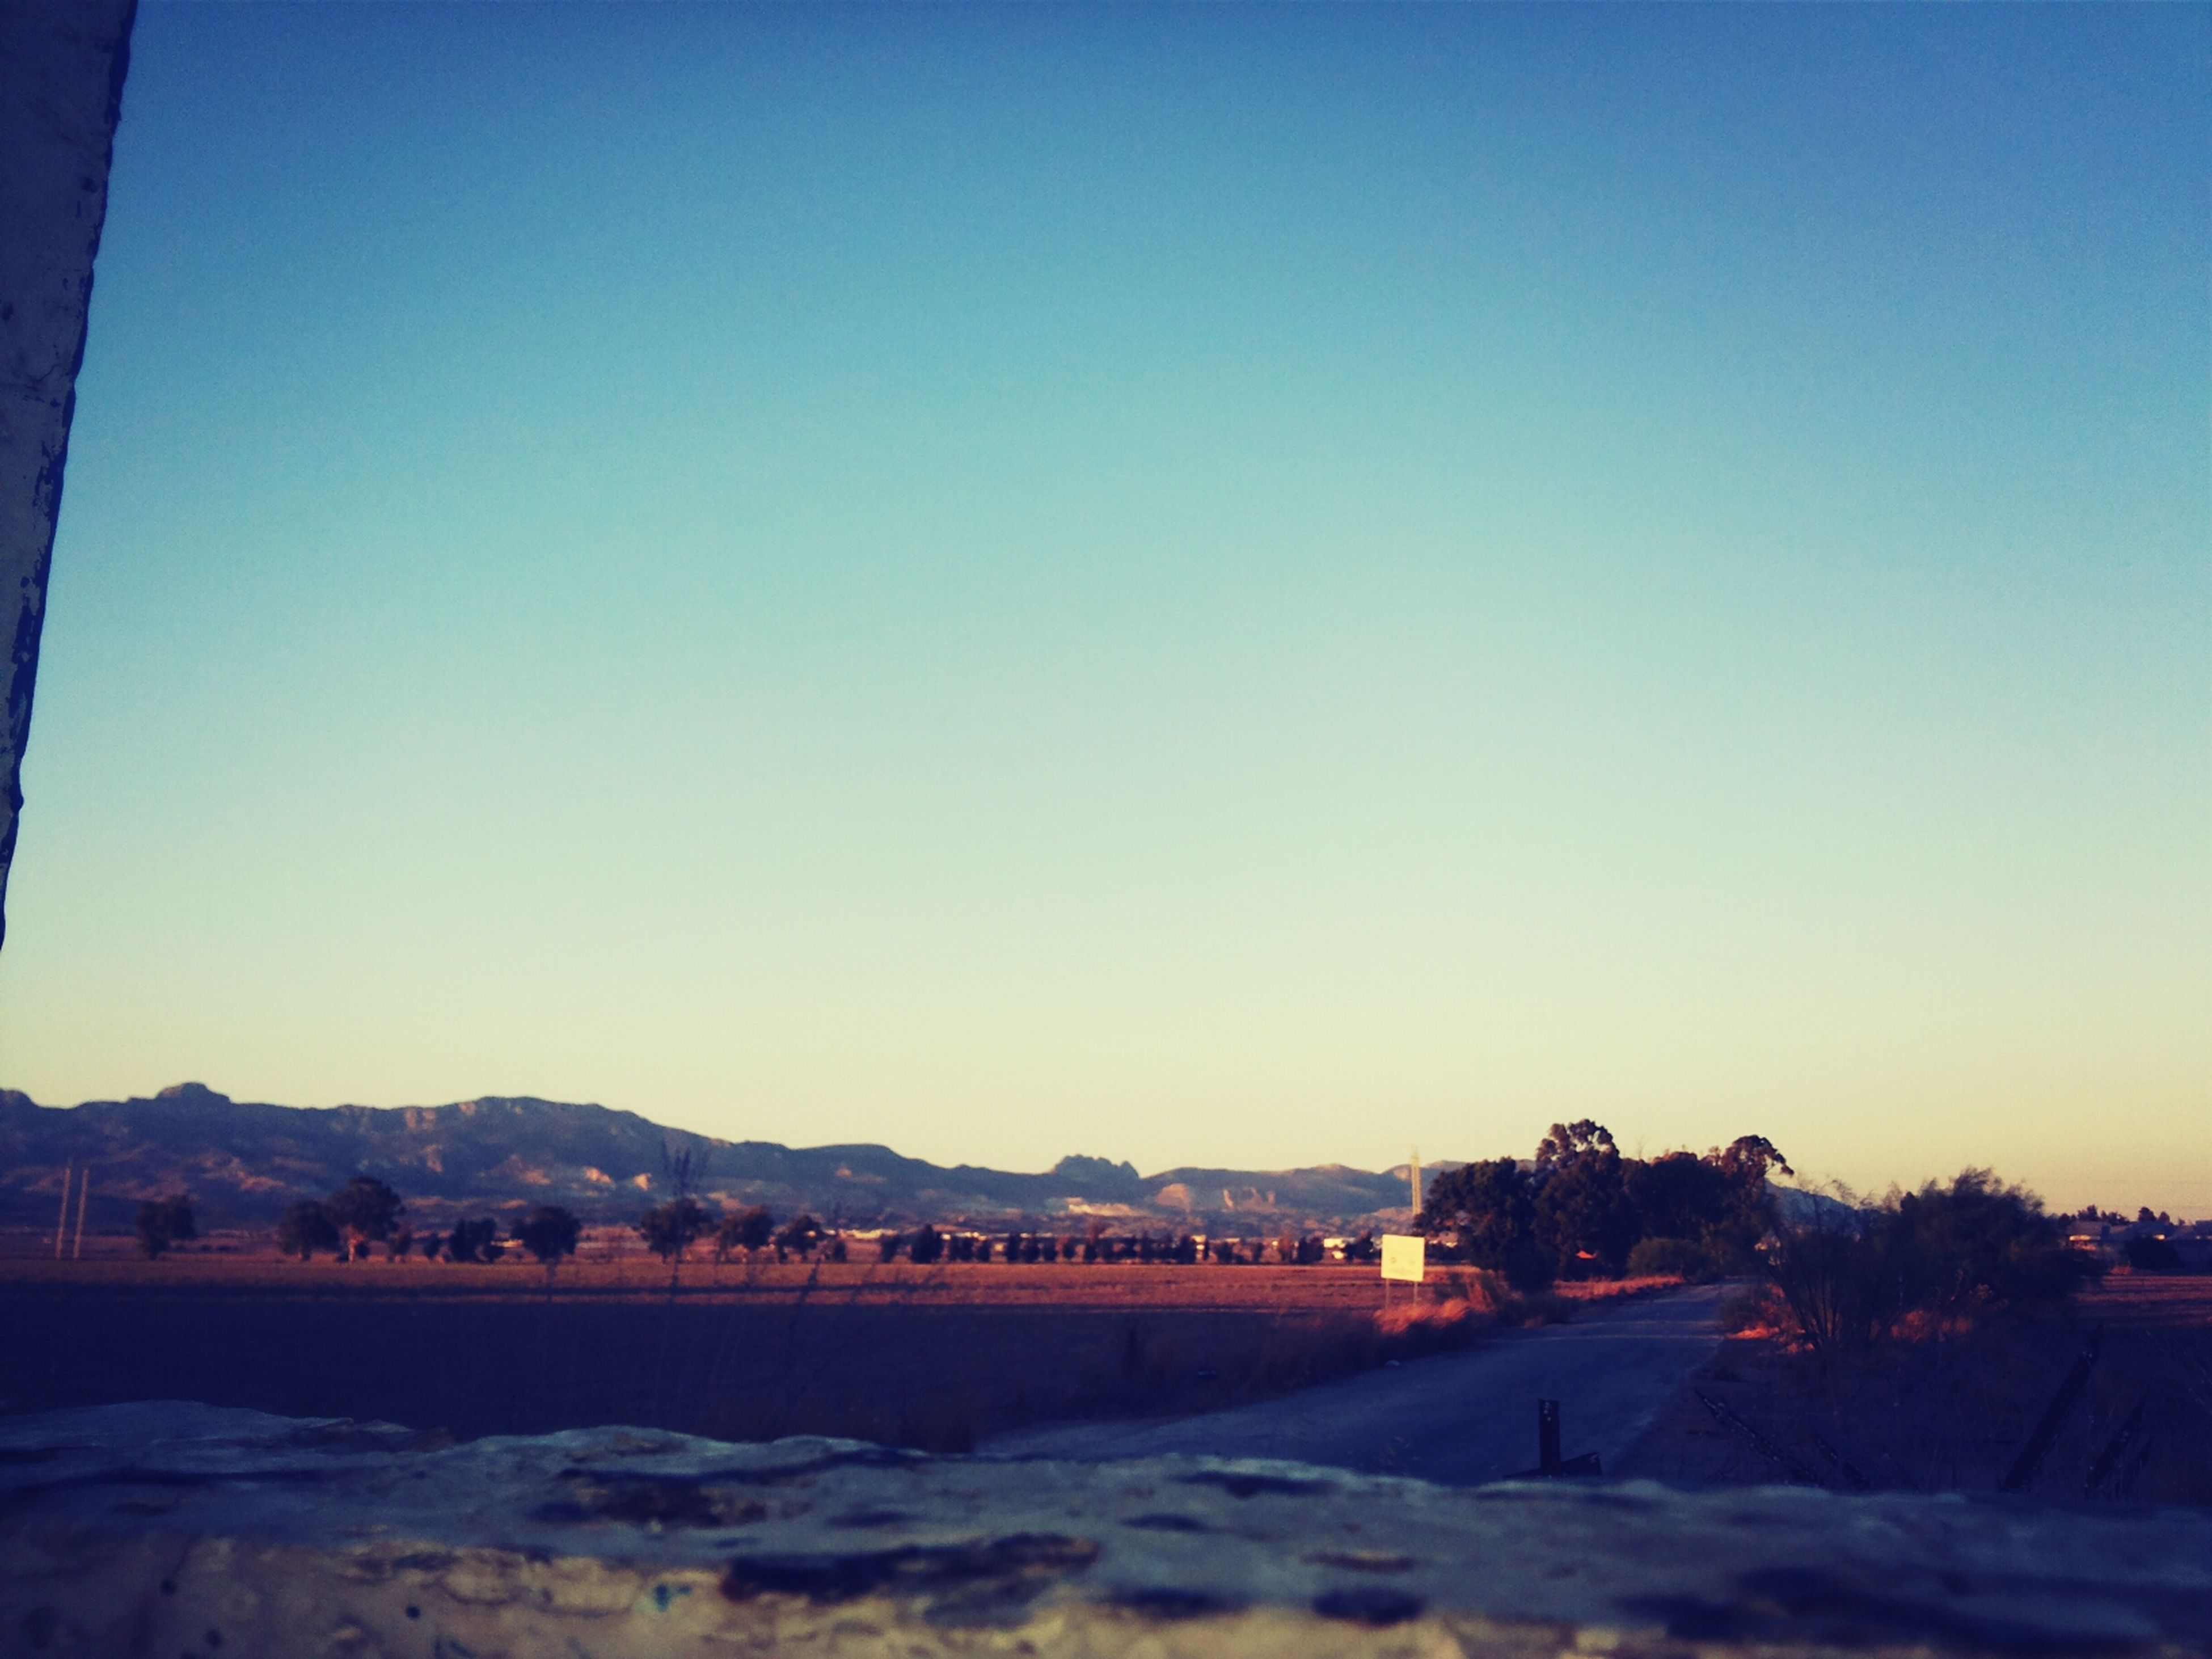 clear sky, copy space, blue, road, landscape, tranquil scene, tranquility, mountain, built structure, nature, scenics, dusk, sand, outdoors, building exterior, beauty in nature, architecture, tree, sunset, no people